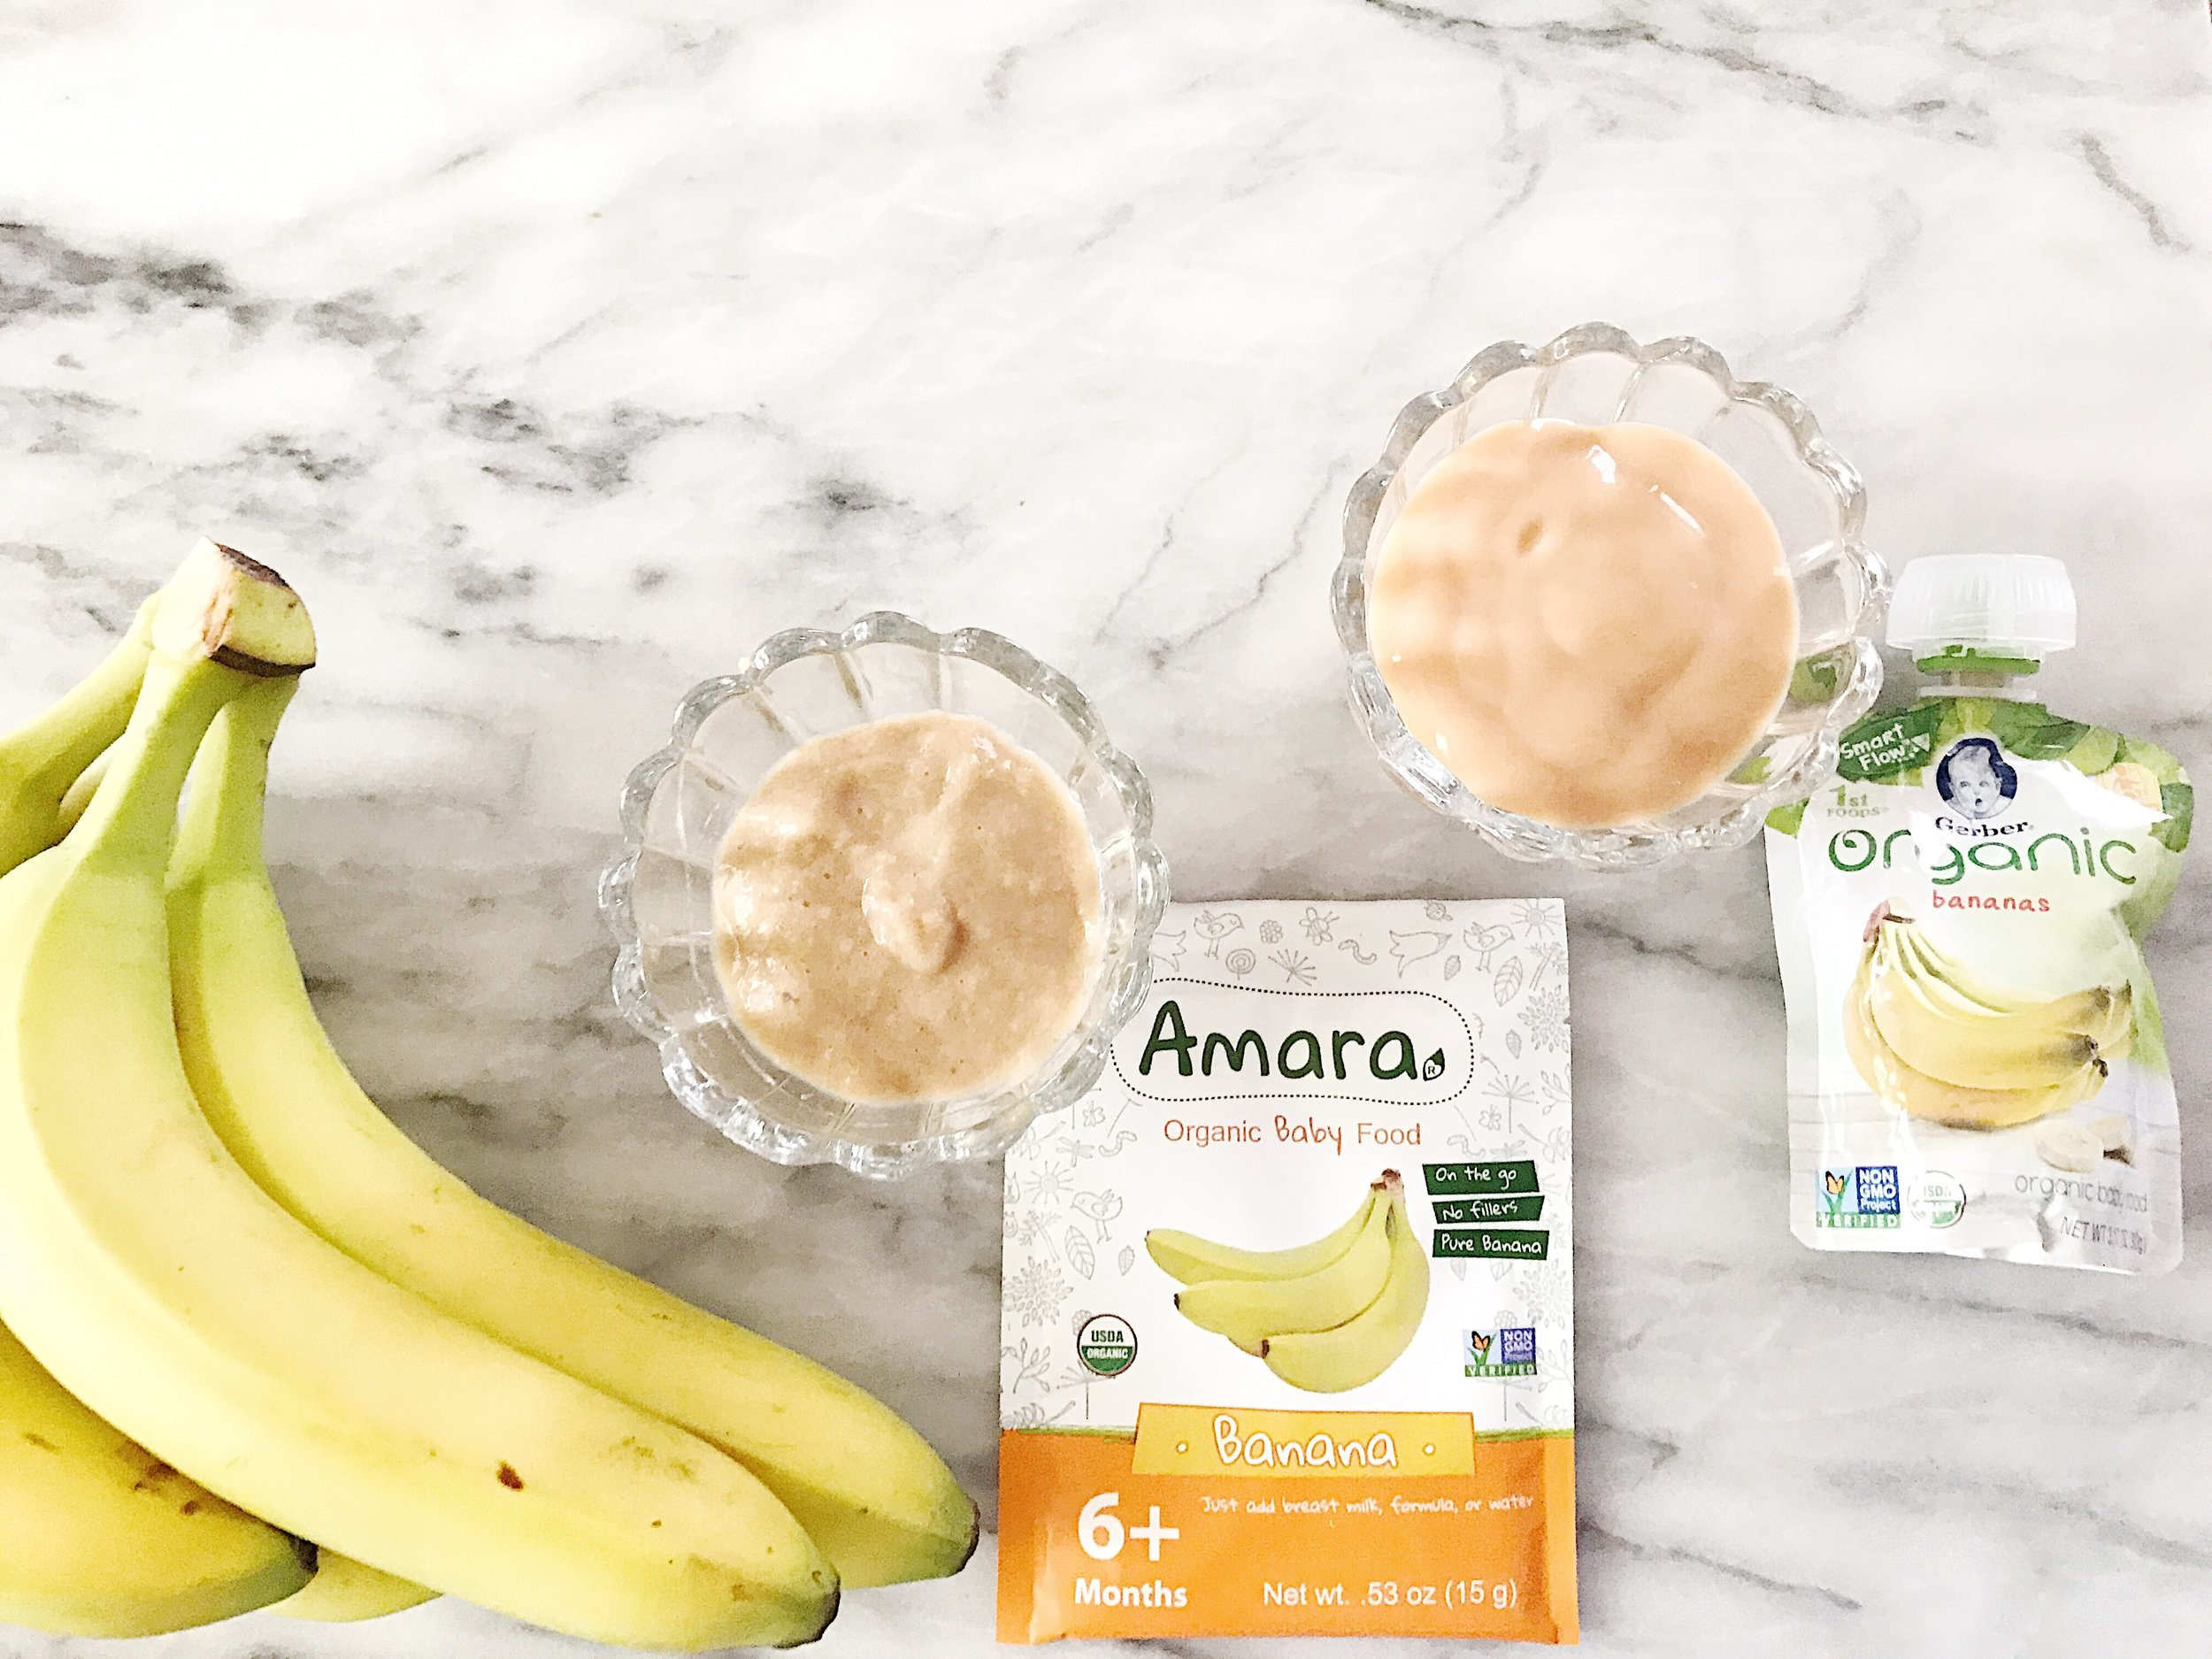 Organic Baby Food Comparison and Taste Test